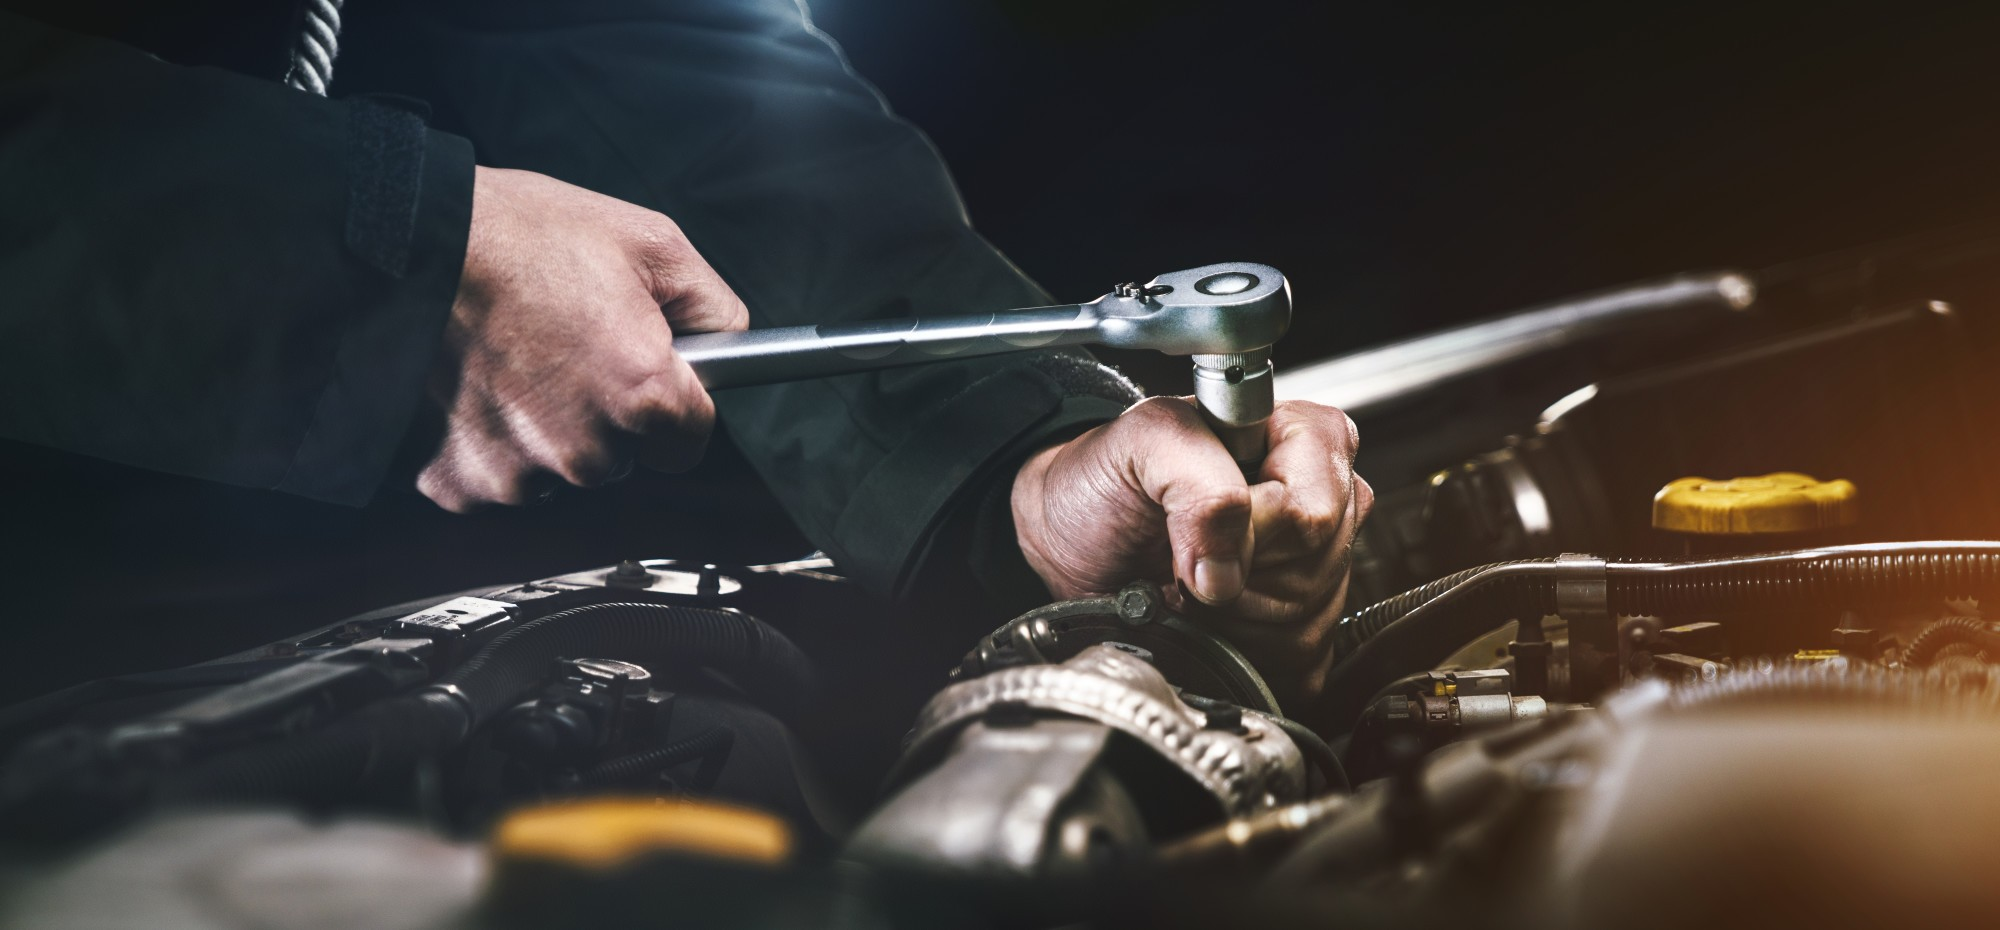 The Top 10 Most Expensive Car Repairs